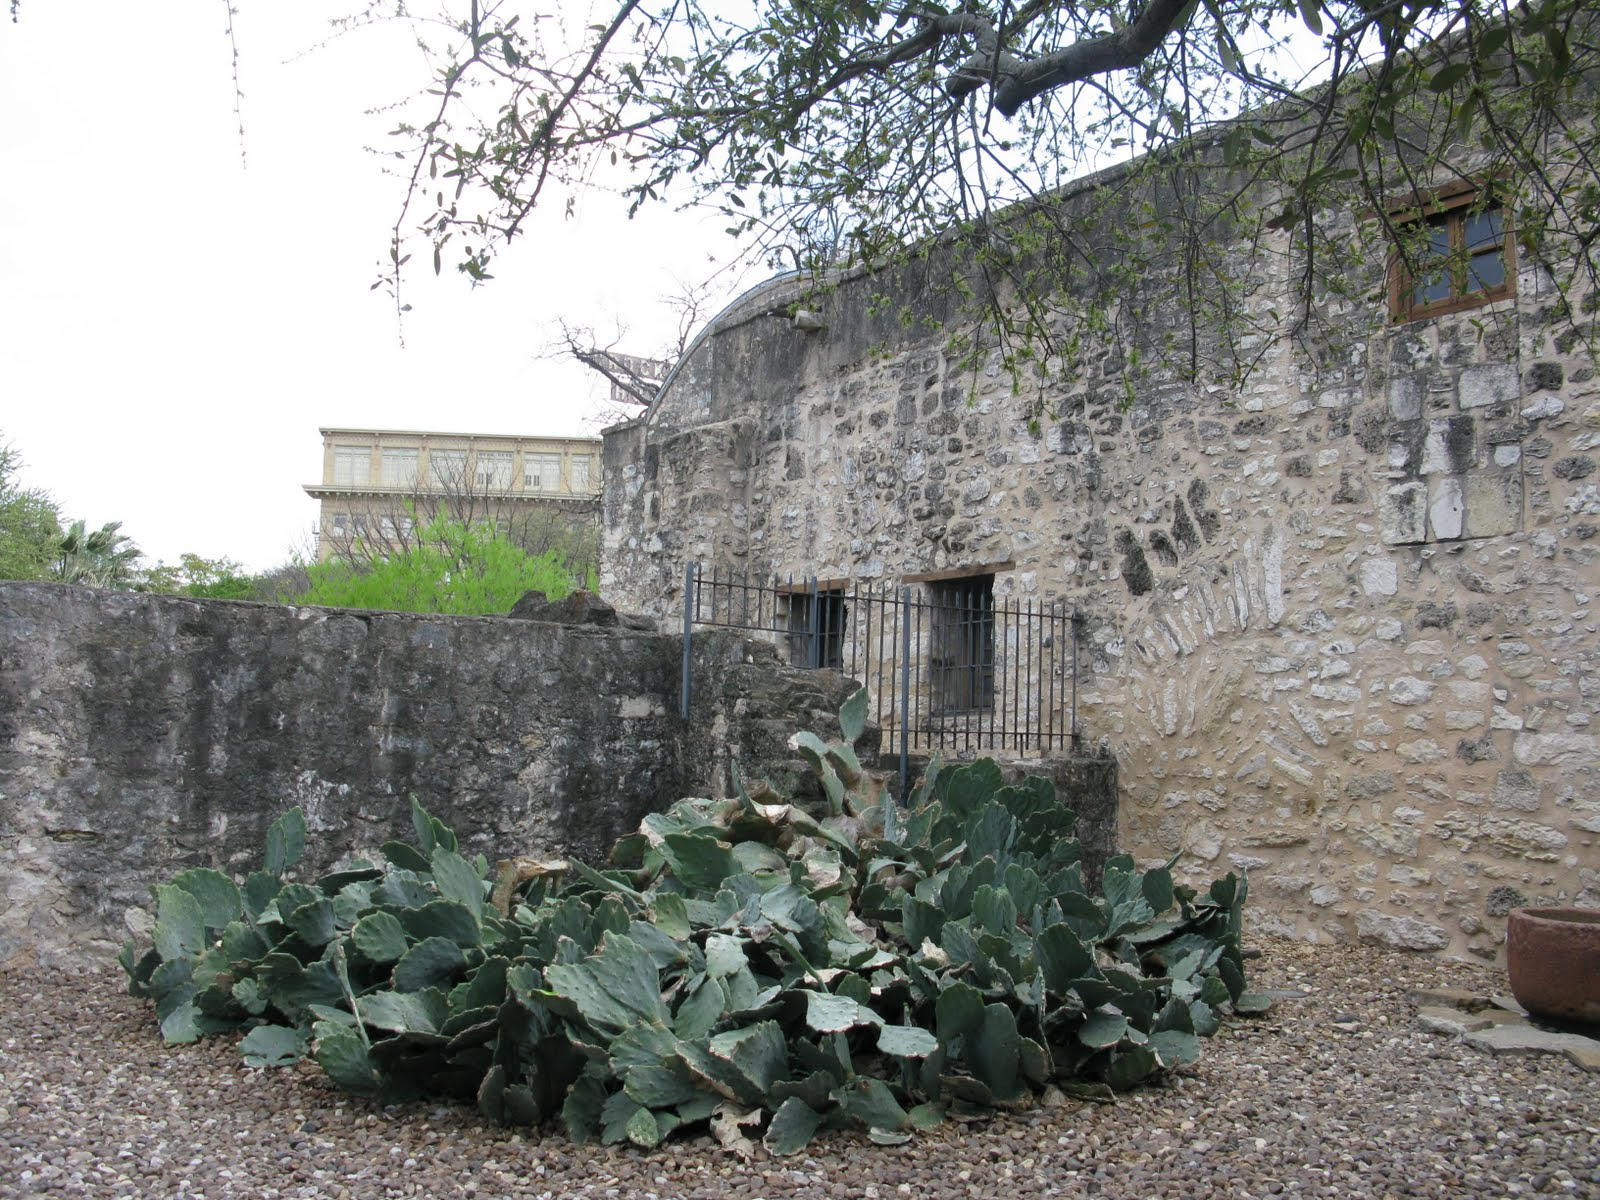 the fight for freedom at the alamo The alamo, and its overlooked history of slavery, could be declared a world heritage monument the battle of the alamo was part of the texas revolution the alamo was seen as a symbol of texas pride and americans fighting for freedom.